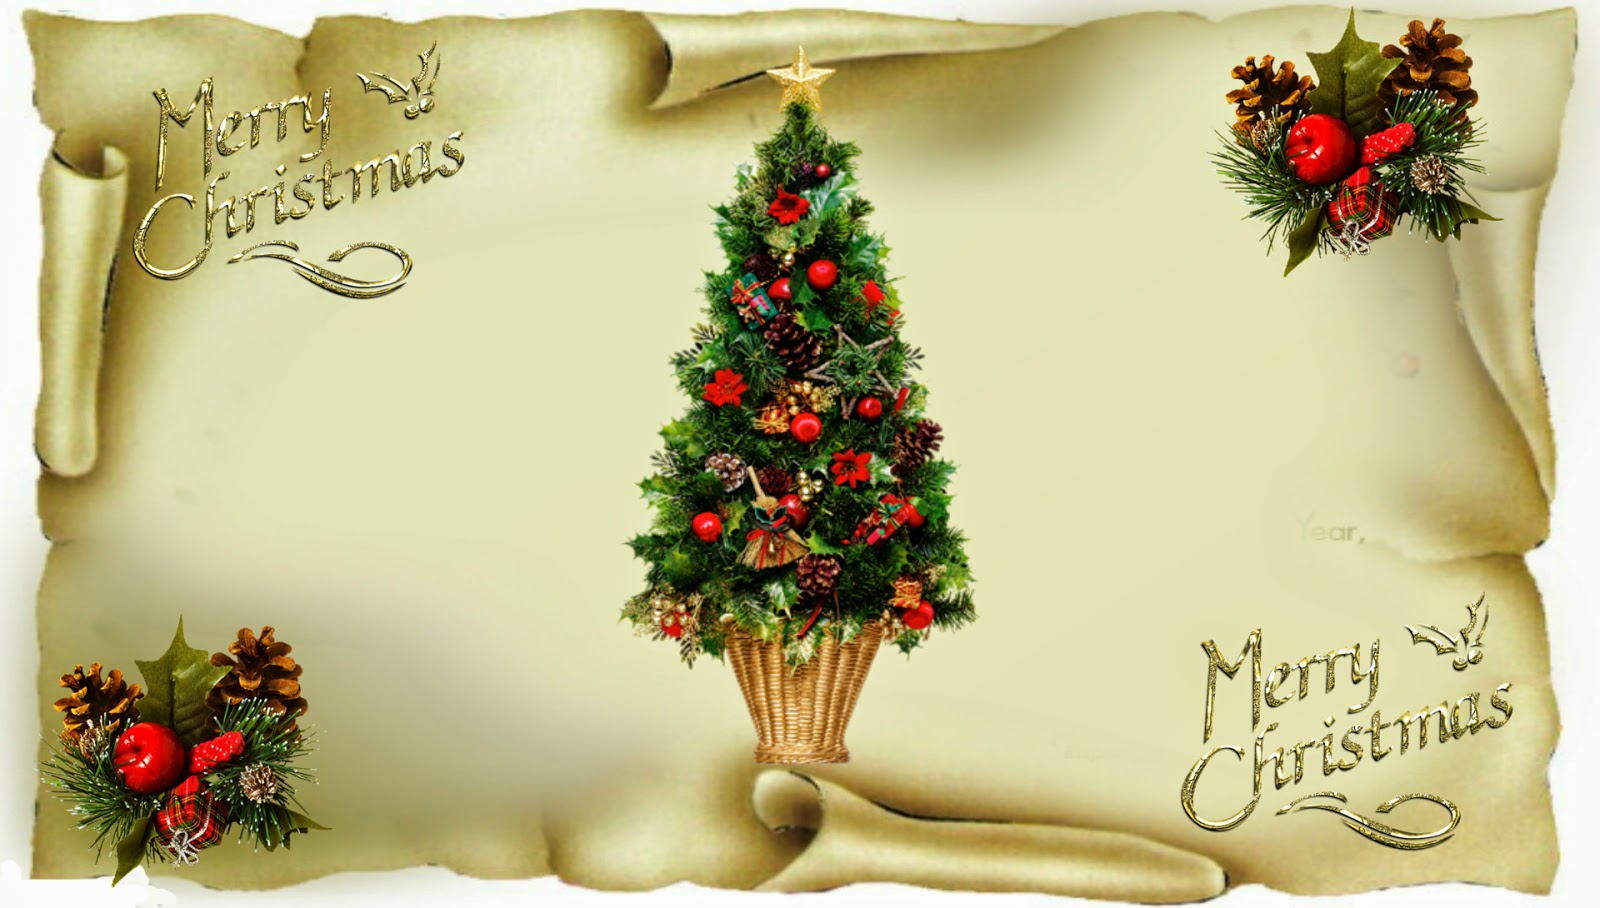 Merry christmas greeting card hd images free download christmas greetings card with xmas tree 1920x1090 image kristyandbryce Images